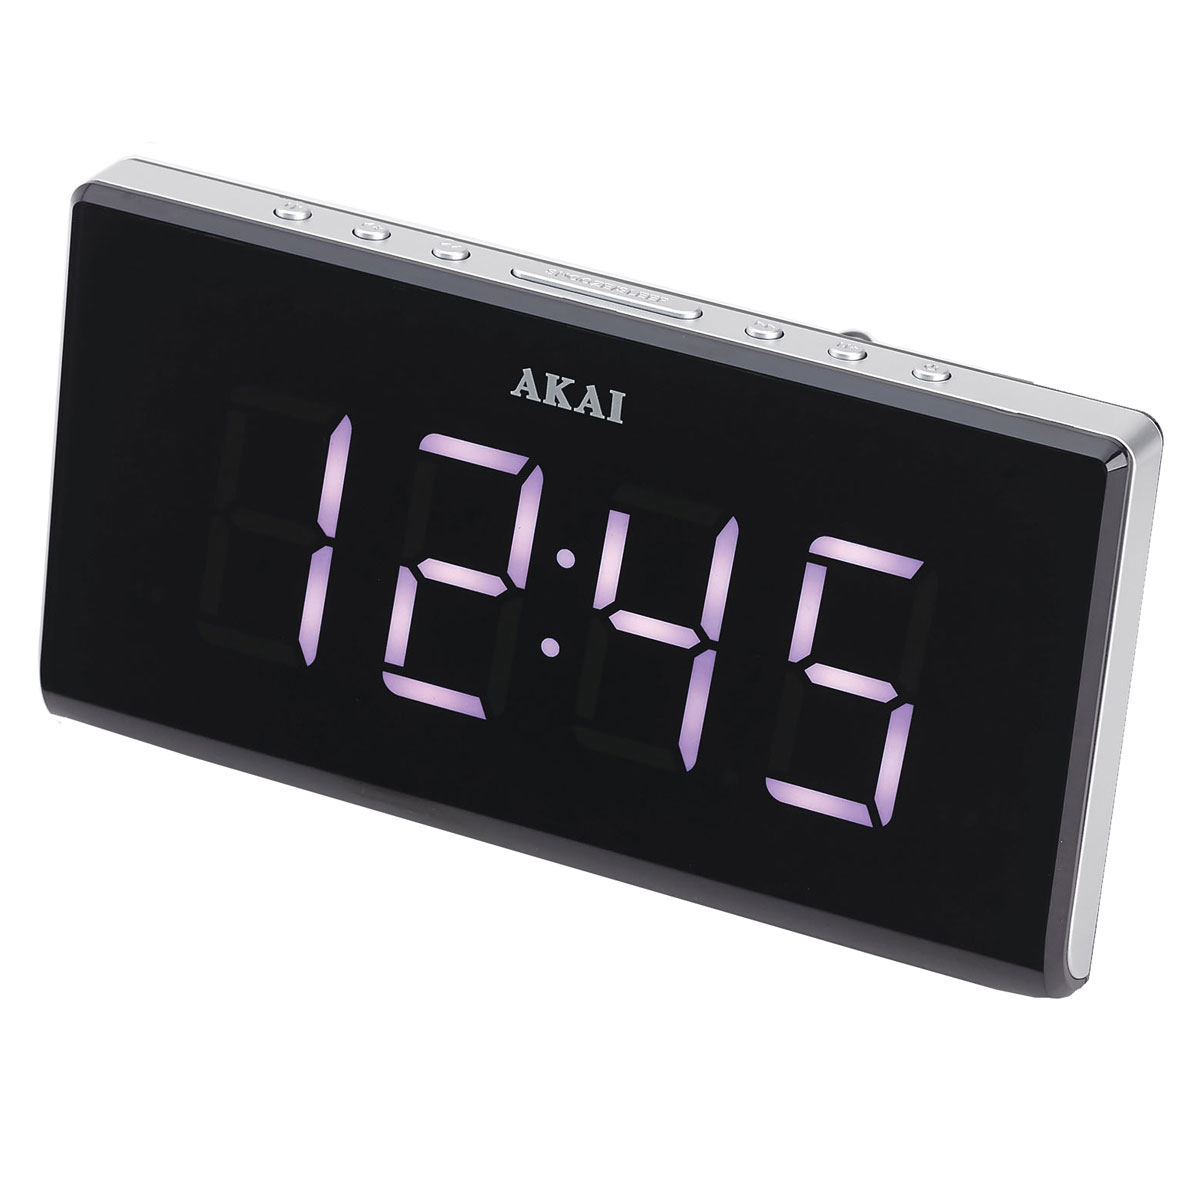 akai ac 136ks radio radio r veil aka sur. Black Bedroom Furniture Sets. Home Design Ideas